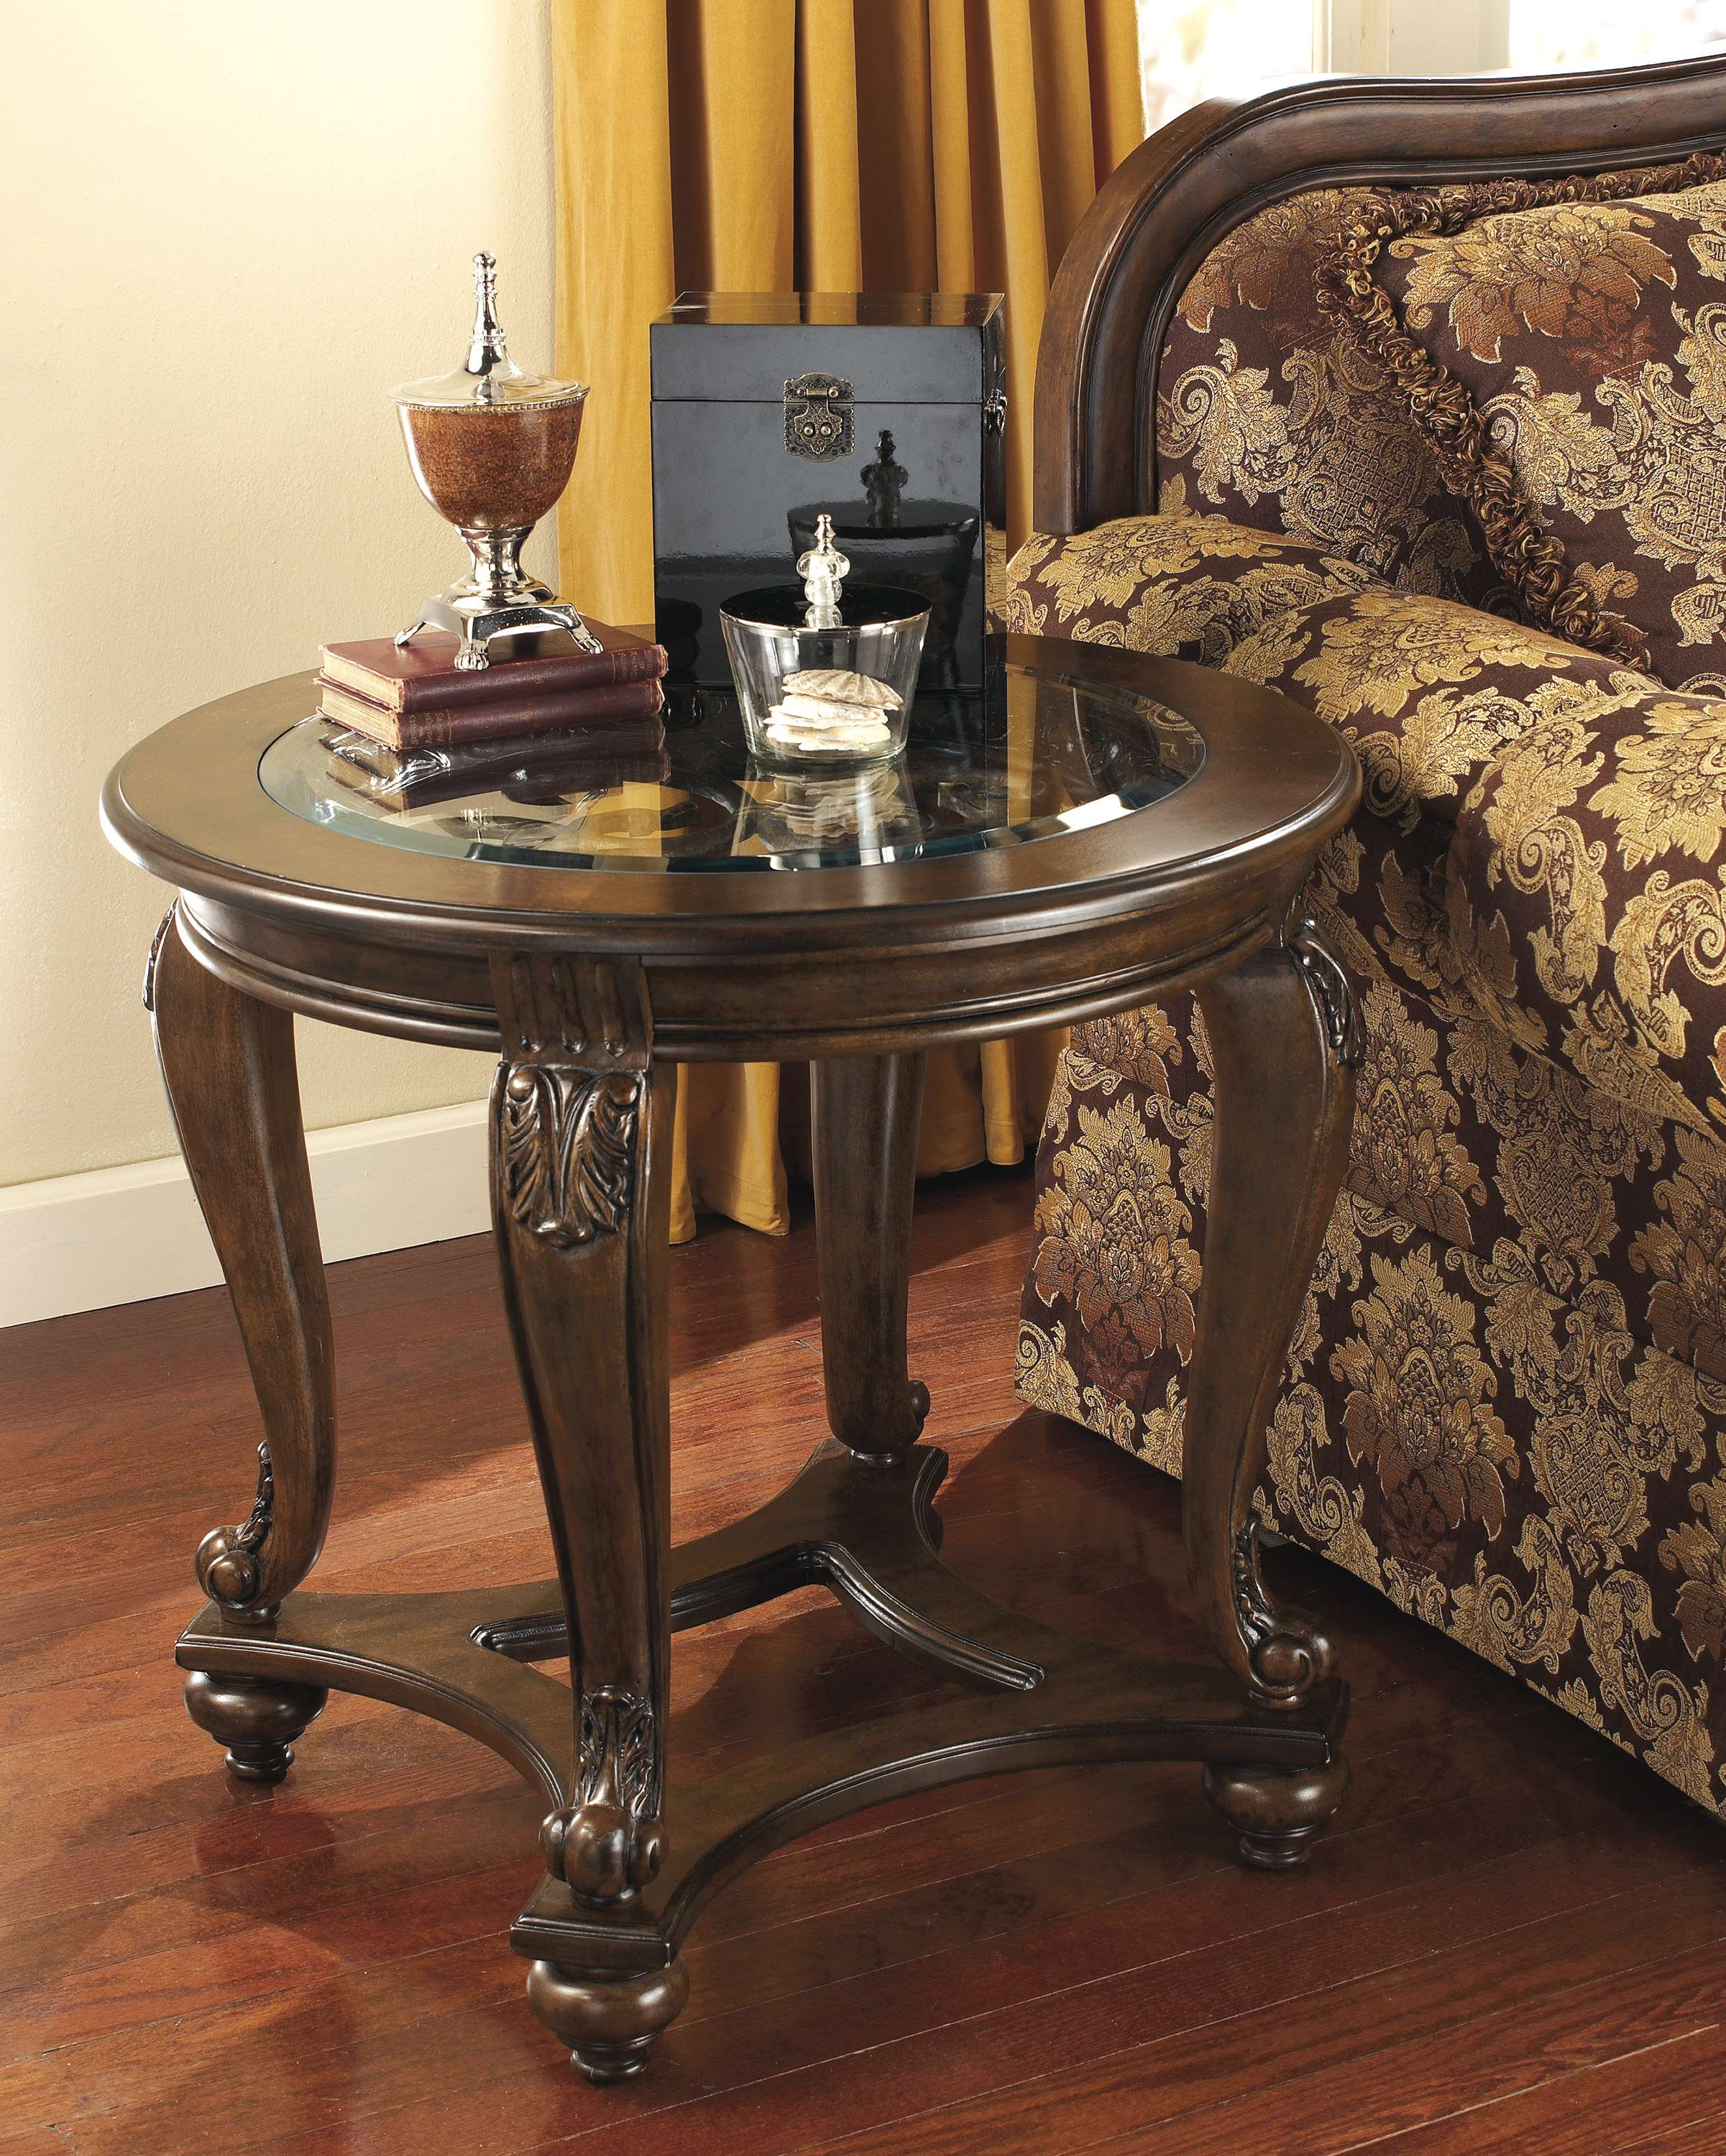 signature design ashley norcastle dark brown round end table tables leon kingston whalen braxton dining set palliser bedroom furniture vintage ethan allen southwestern lane